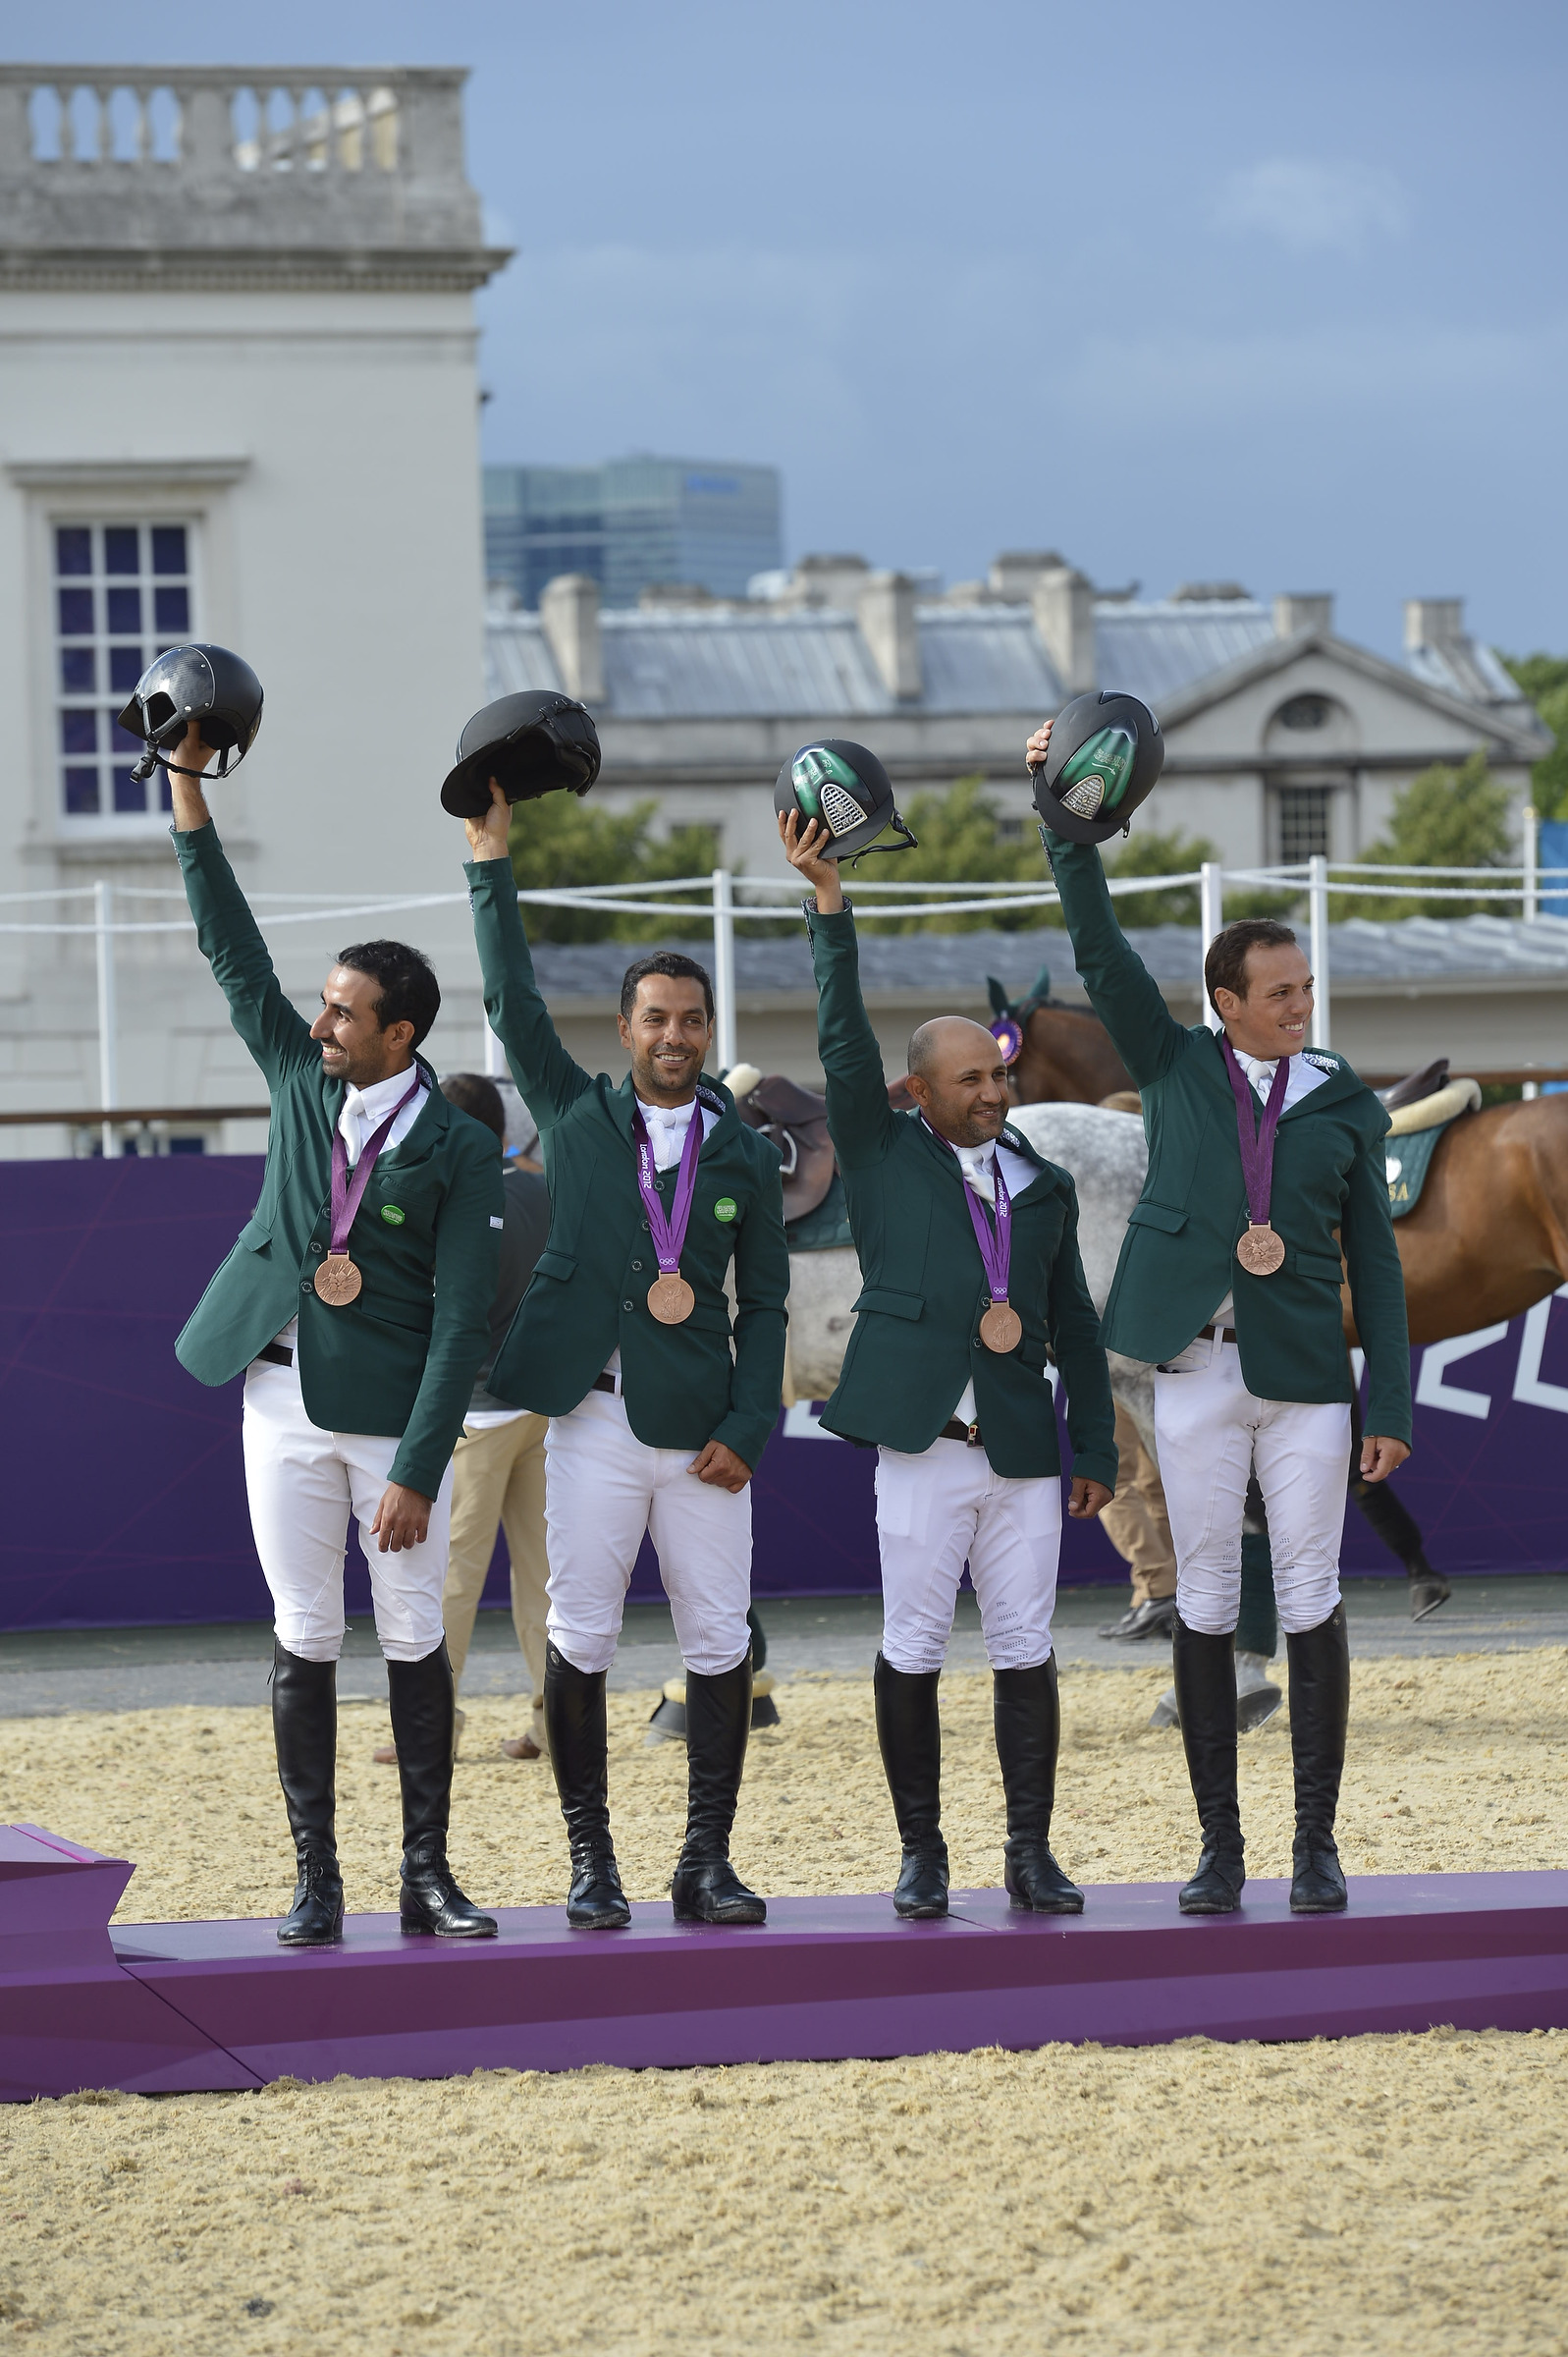 Horse Times Egypt: Equestrian Magazine :News :SAUDI ARABIA SECURES HISTORIC FIRST TEAM MEDAL - LONDON 2012 OLYMPIC SHOW JUMPING